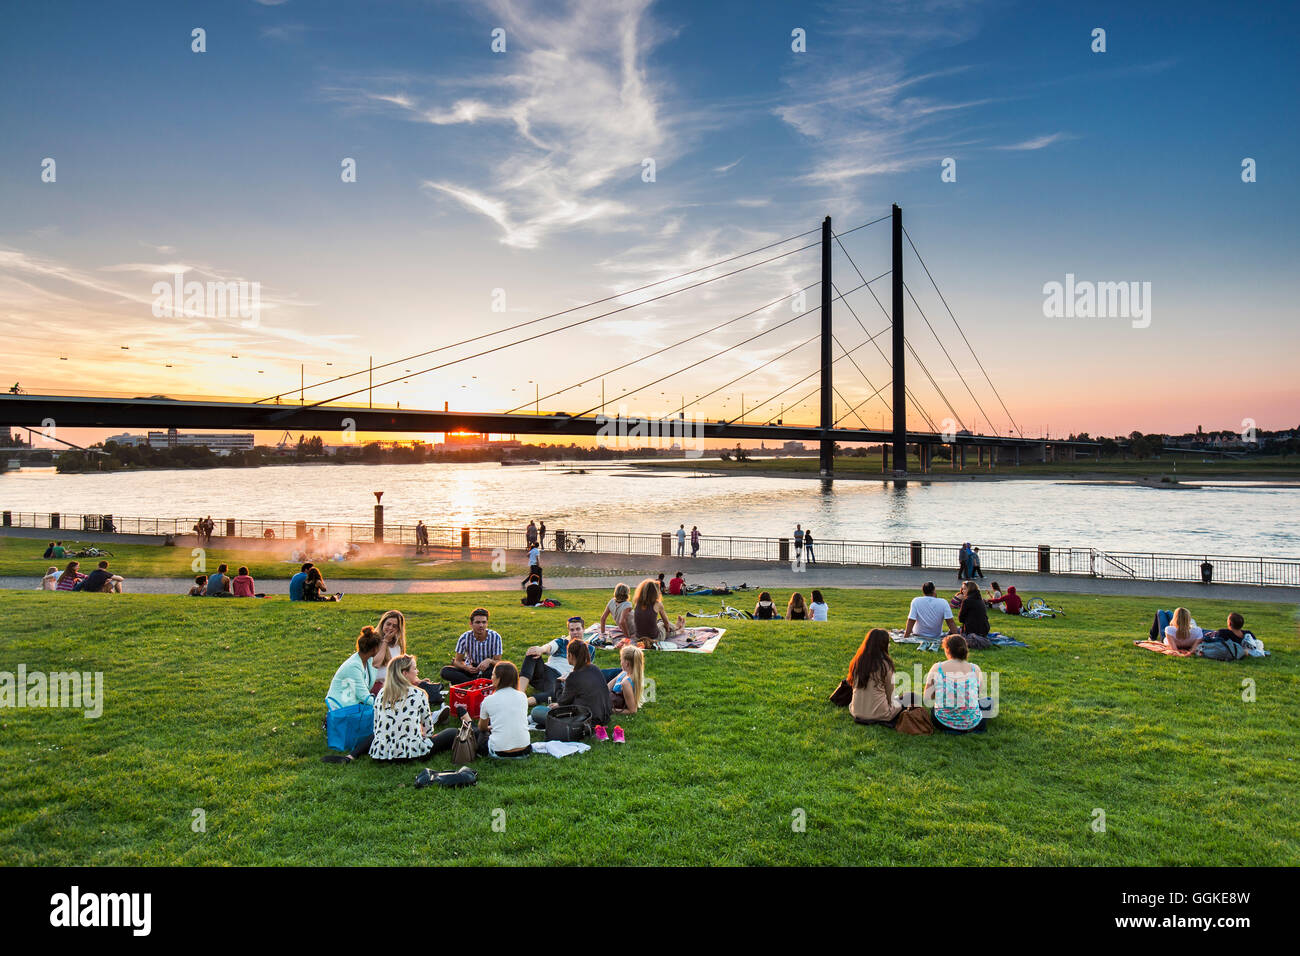 Sunset at the Rhine meadows, Duesseldorf, North Rhine Westphalia, Germany - Stock Image